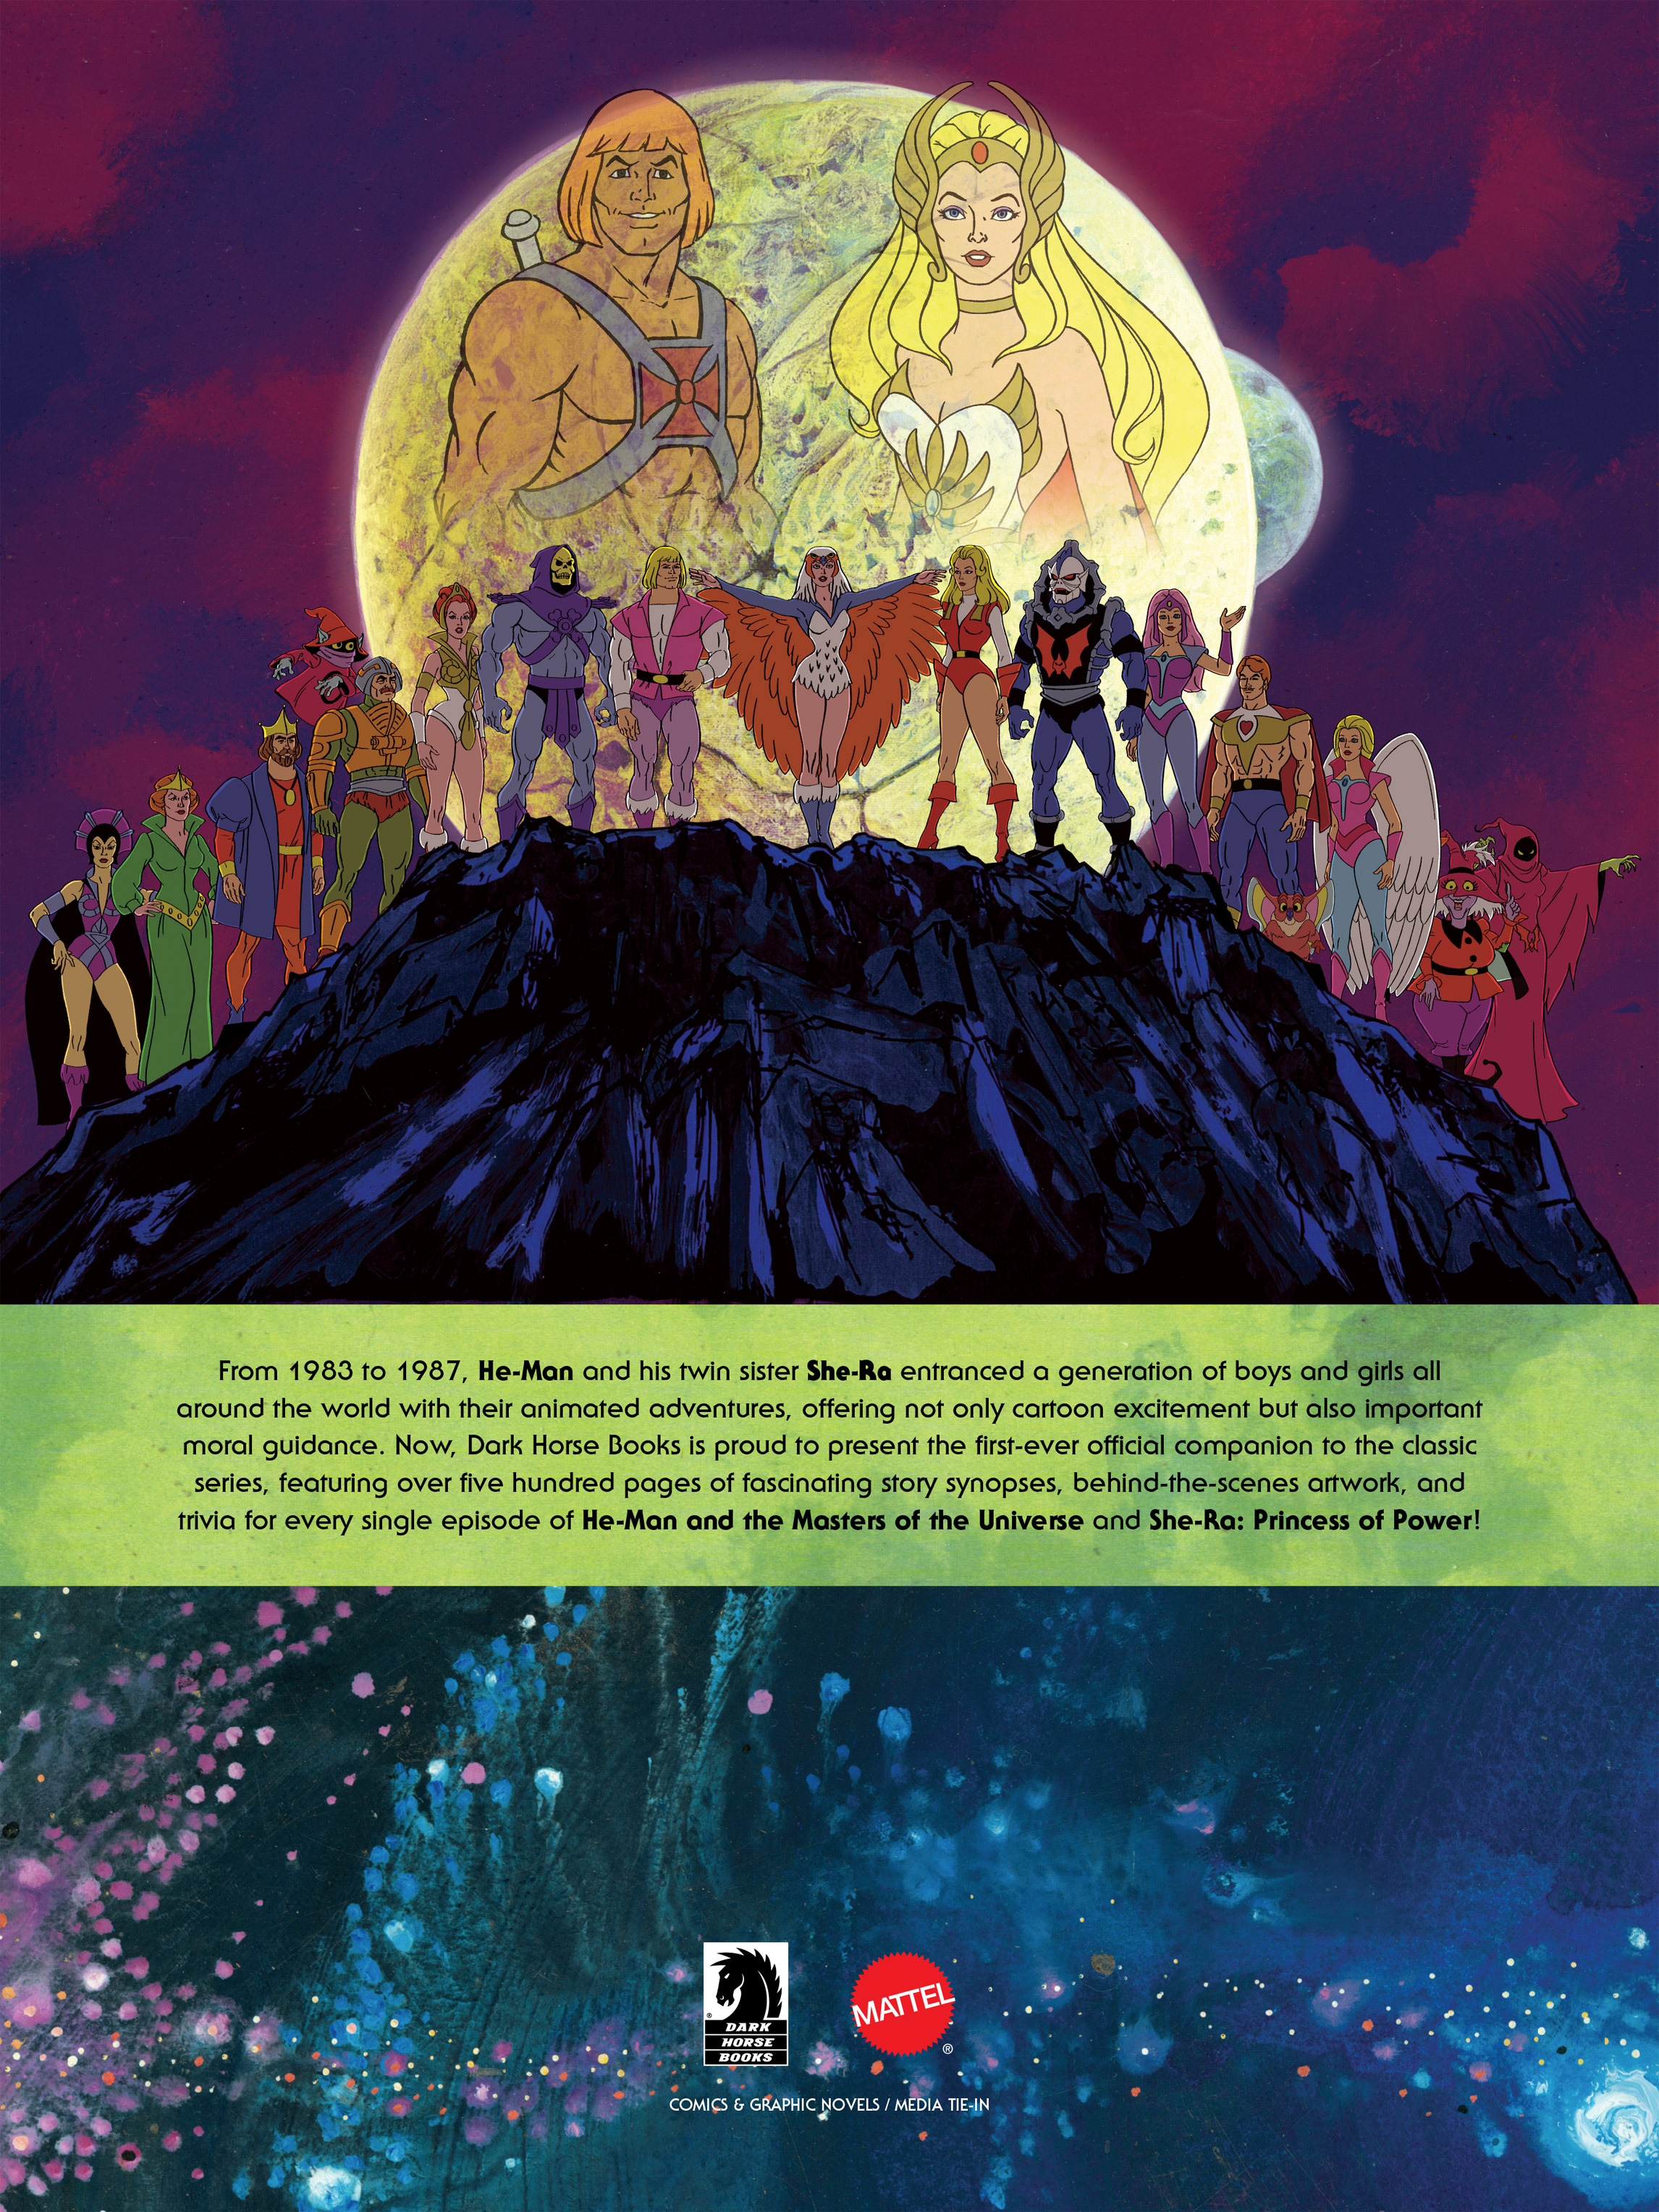 Read online He-Man and She-Ra: A Complete Guide to the Classic Animated Adventures comic -  Issue # TPB (Part 3) - 192